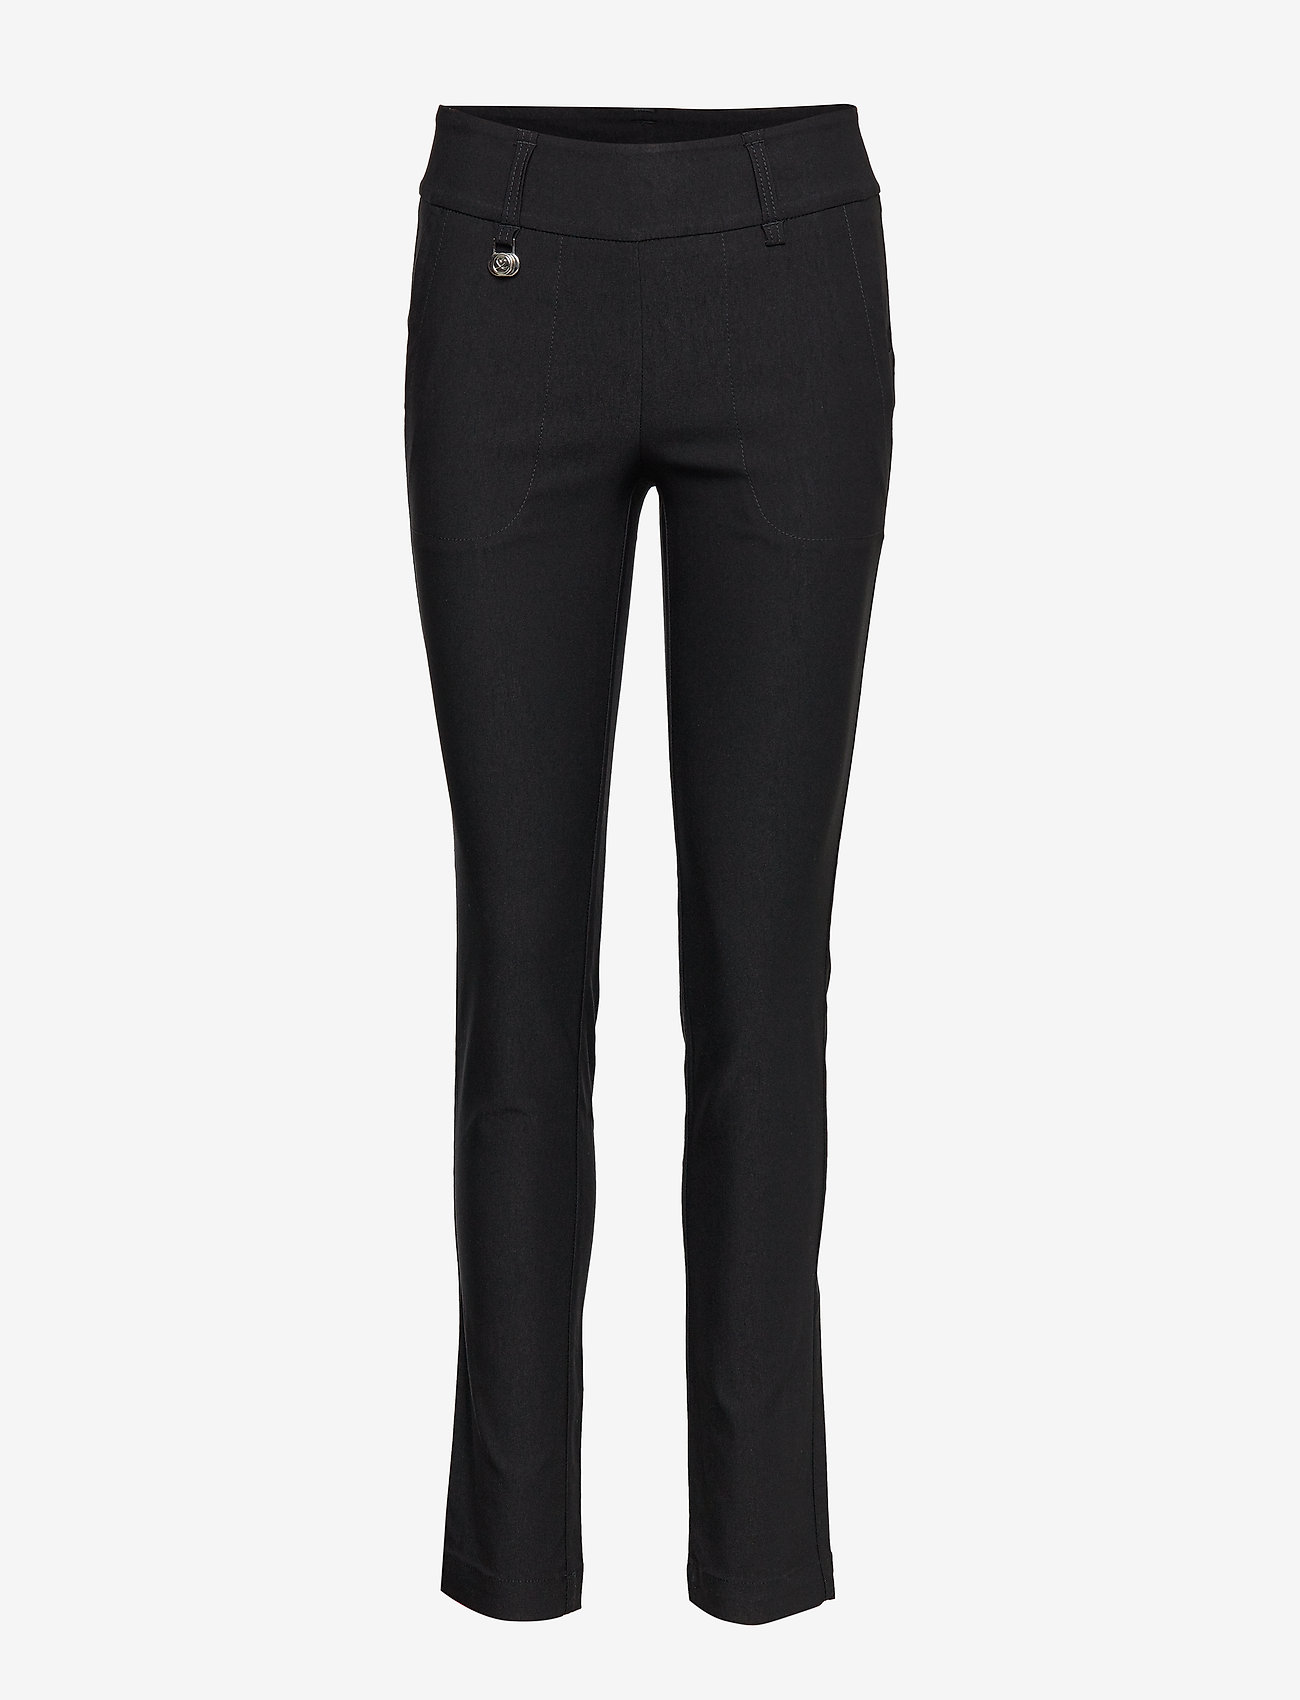 Daily Sports - MAGIC PANTS 32 INCH - golfbroeken - black - 1